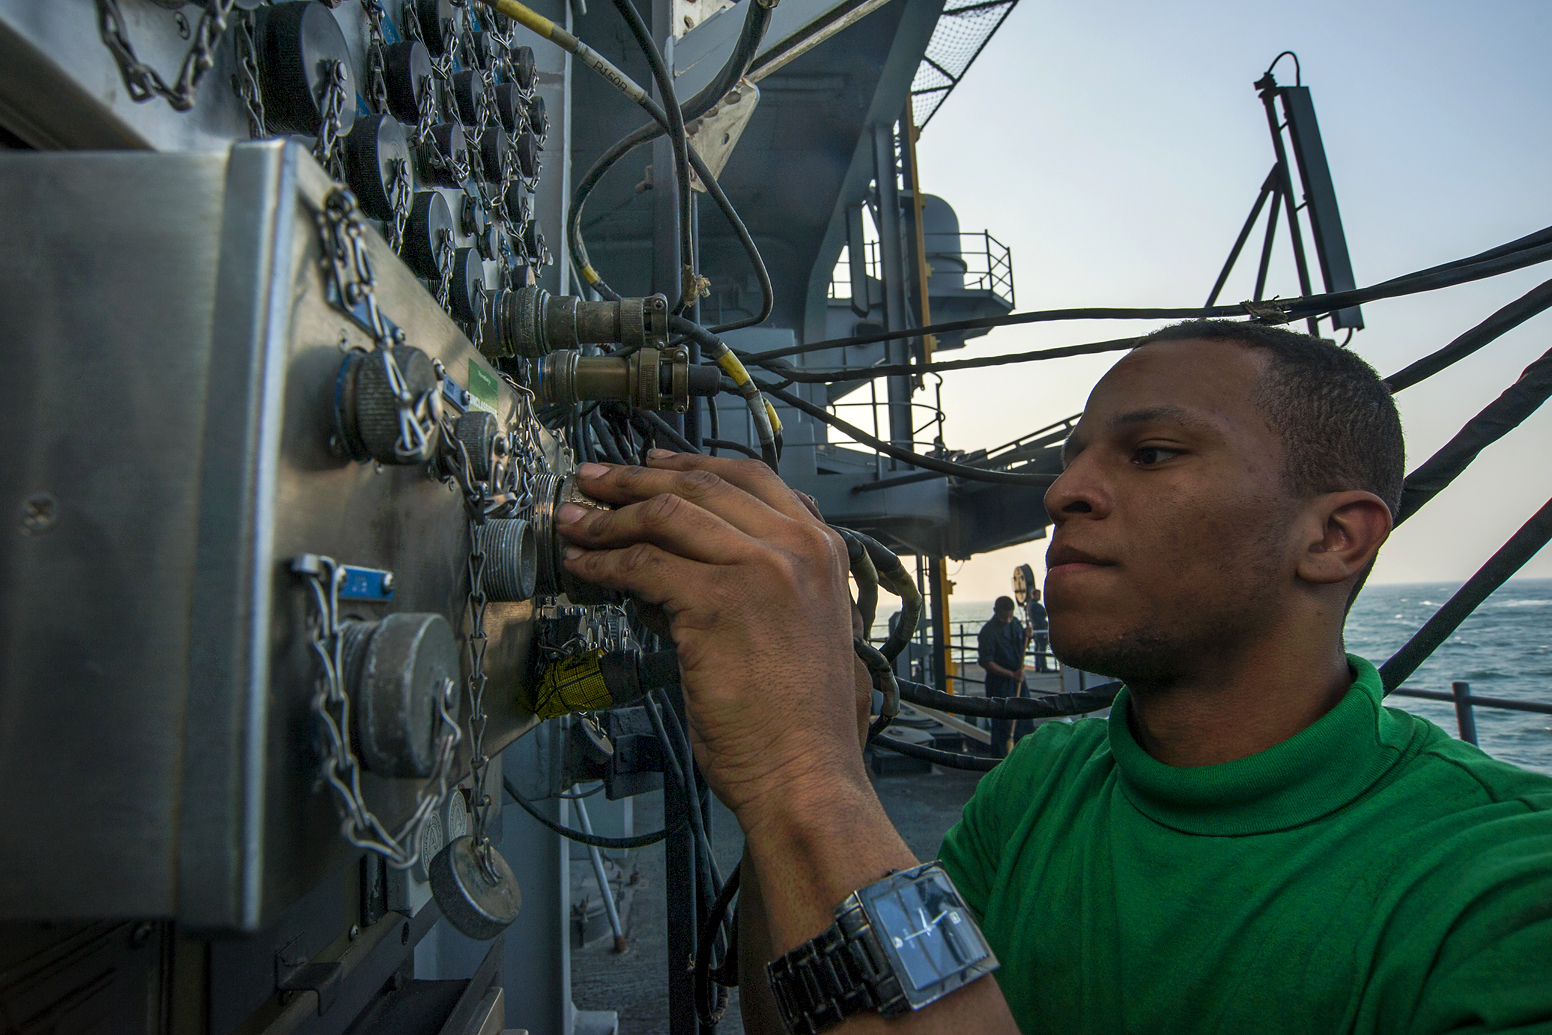 us navy petty officer steve smith connects cables on the fantail of the aircraft carrier uss